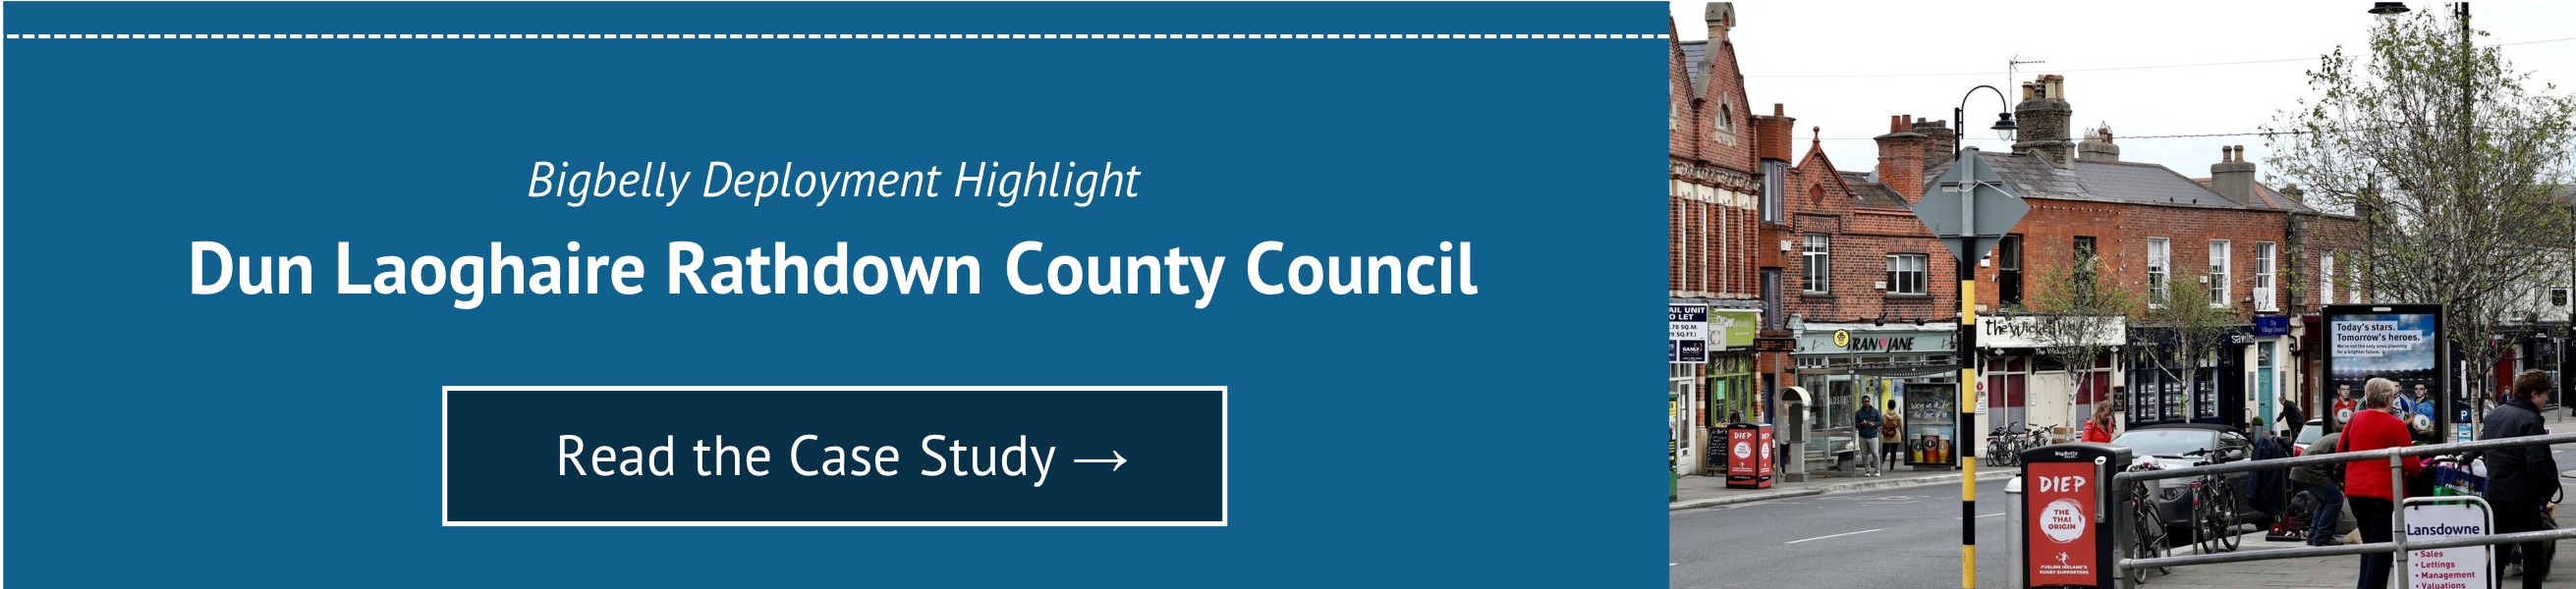 Deployment Highlight for Dun Laoghaire Rathdown County Council - Read the Case Study